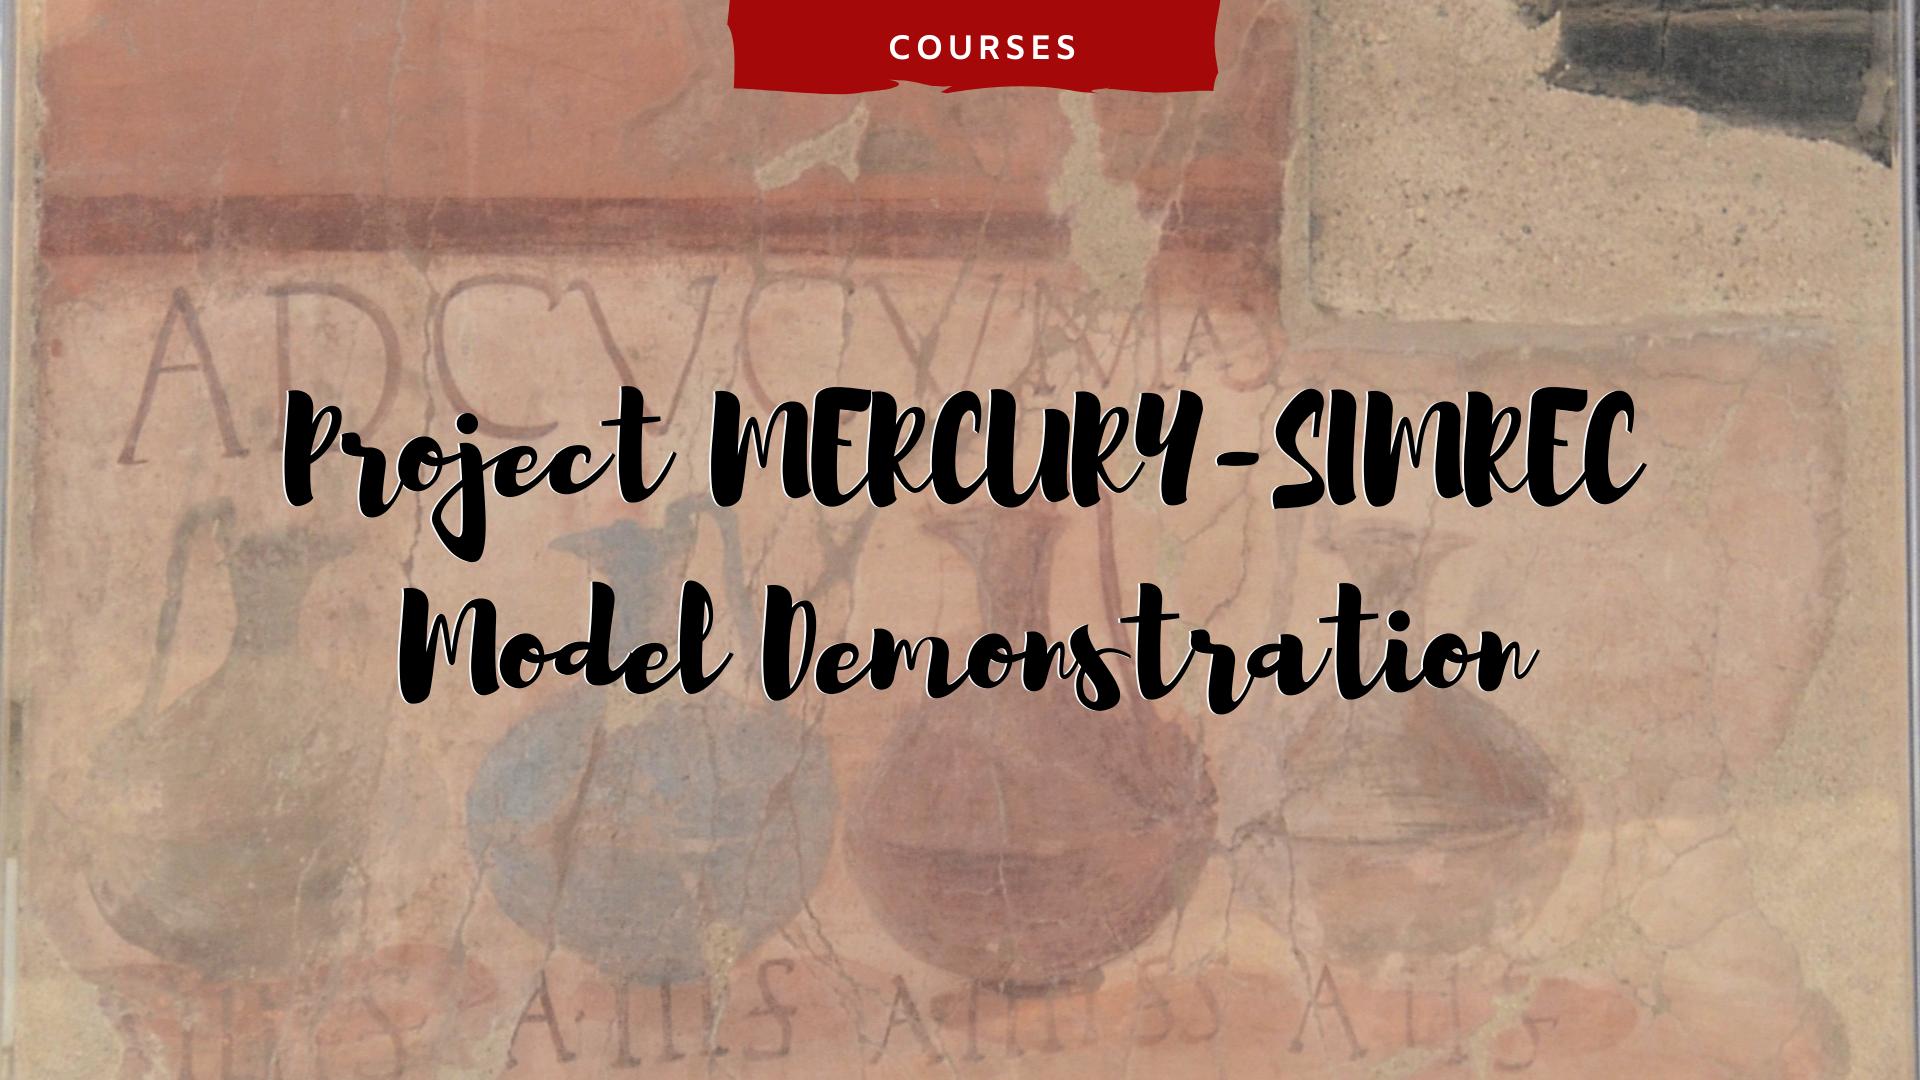 Project MERCURY-SIMREC Model Demonstration with a ad of ancient Roman wine pots and pitchers in the background